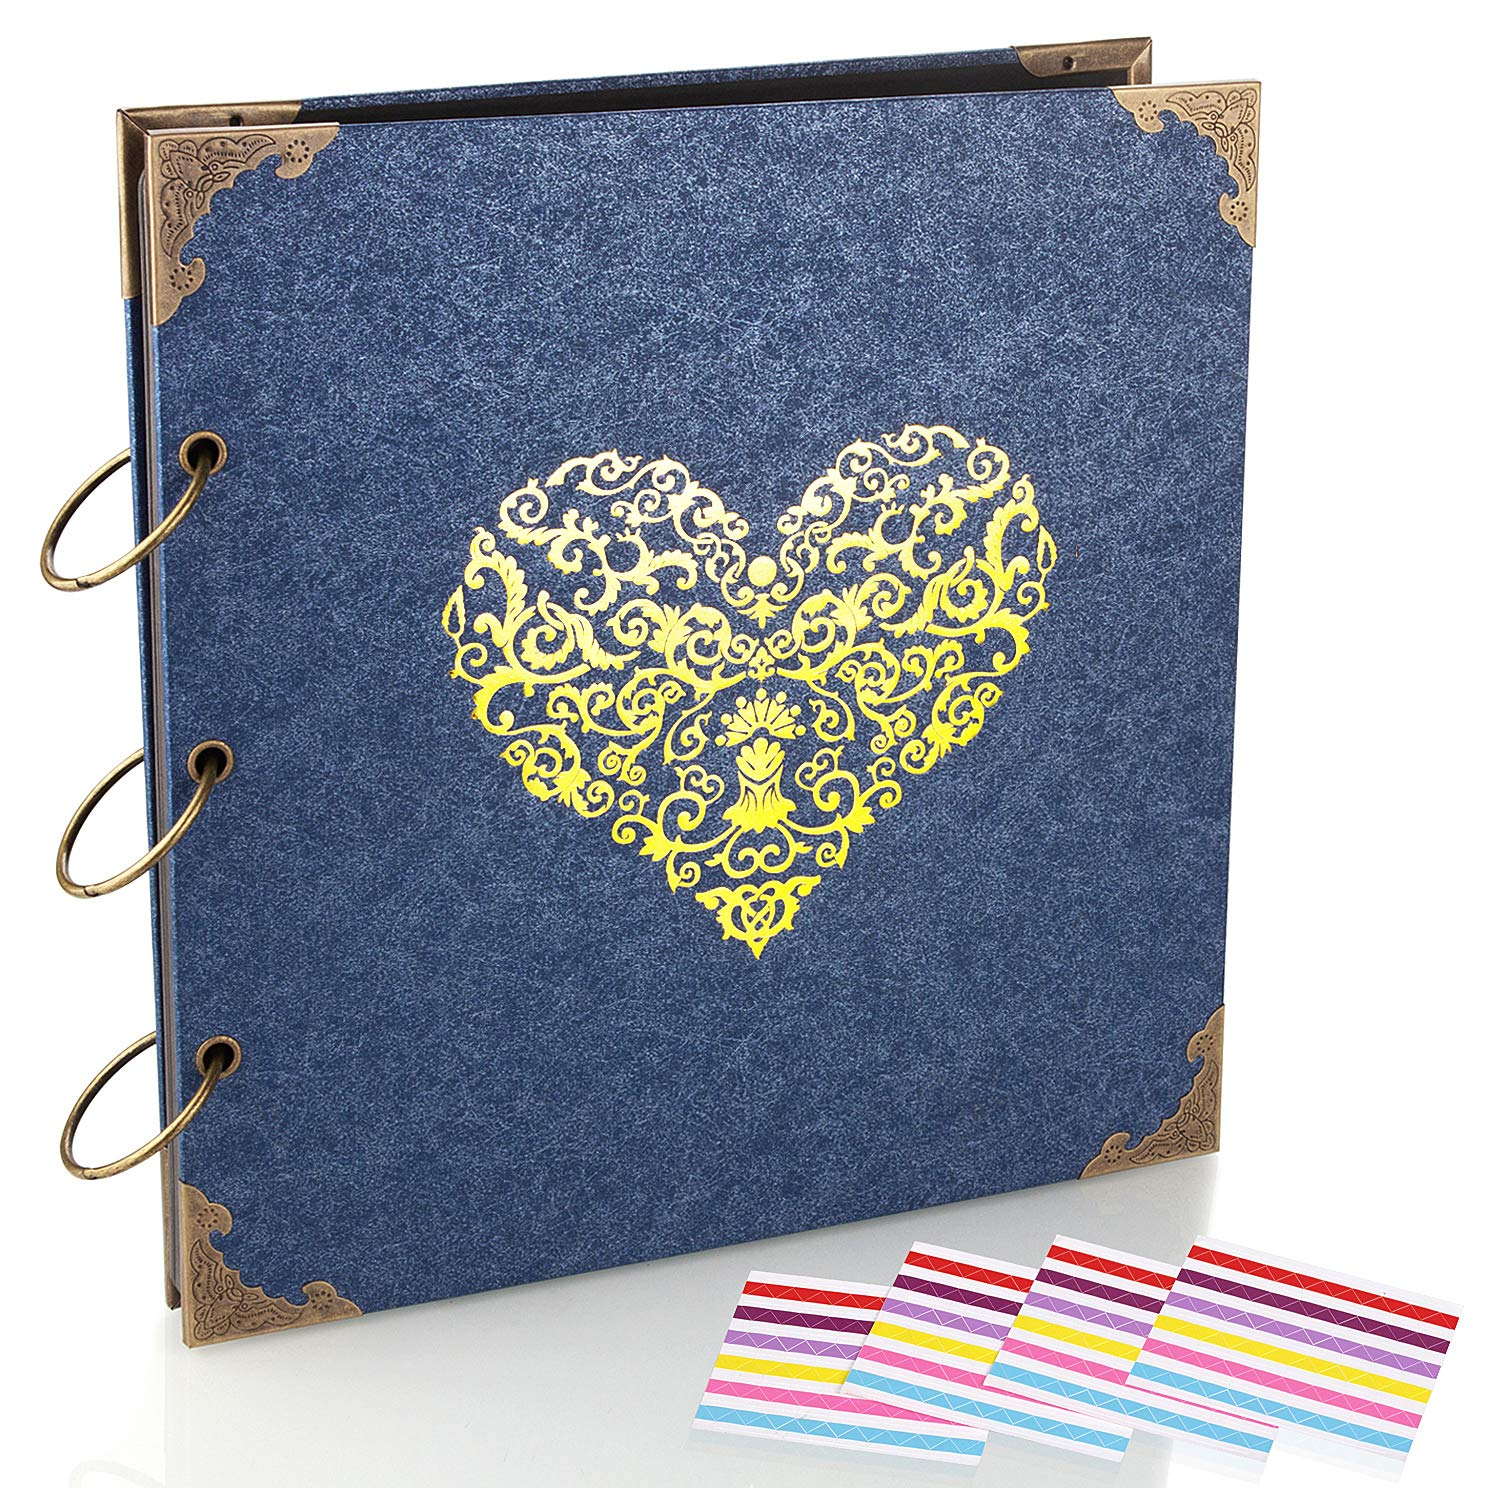 Black ADVcer 10 Sheets Double Sided 9.84 x 10.24 inch Refill Pages Thick Additional Craft Paper Cardboard for 10x10 inch Three-Ring Loose-Leaf Binder Heart-Shaped Photo Album and DIY Scrapbook